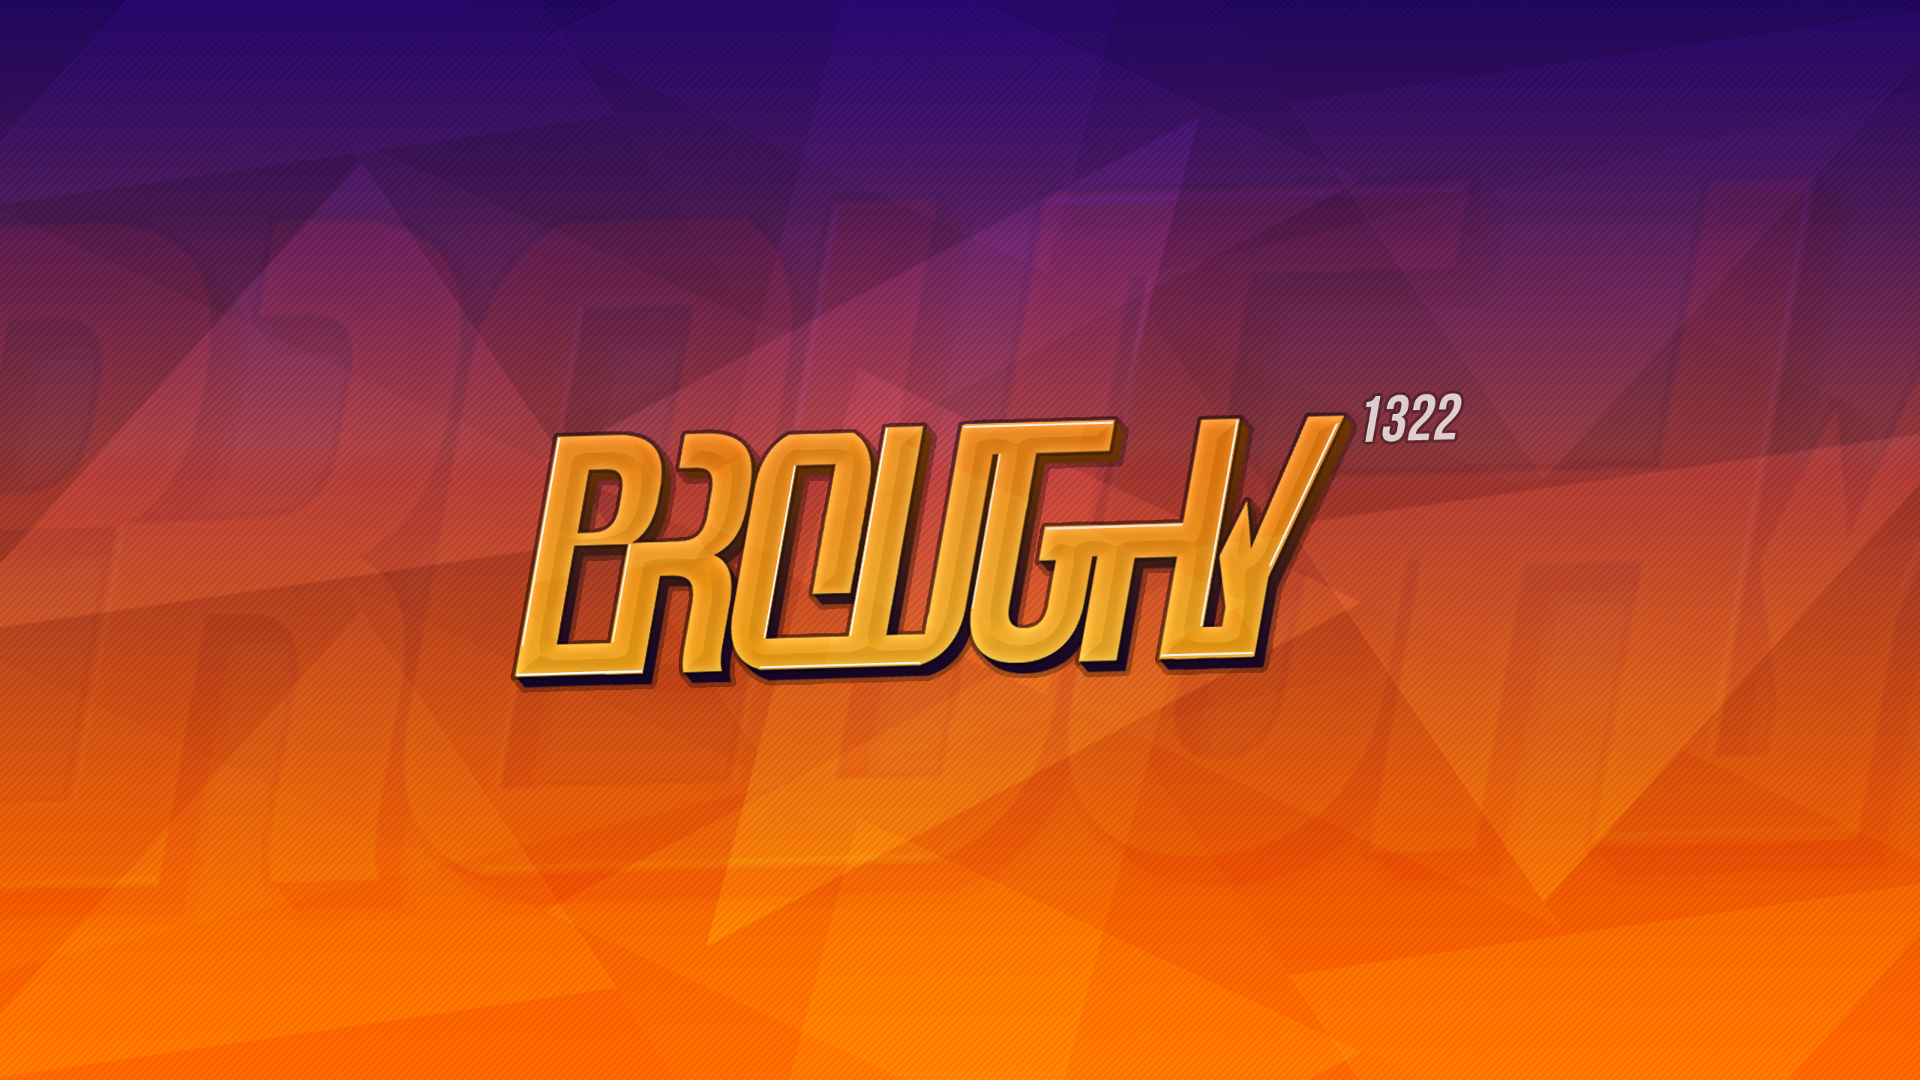 Broughy1322 Intro